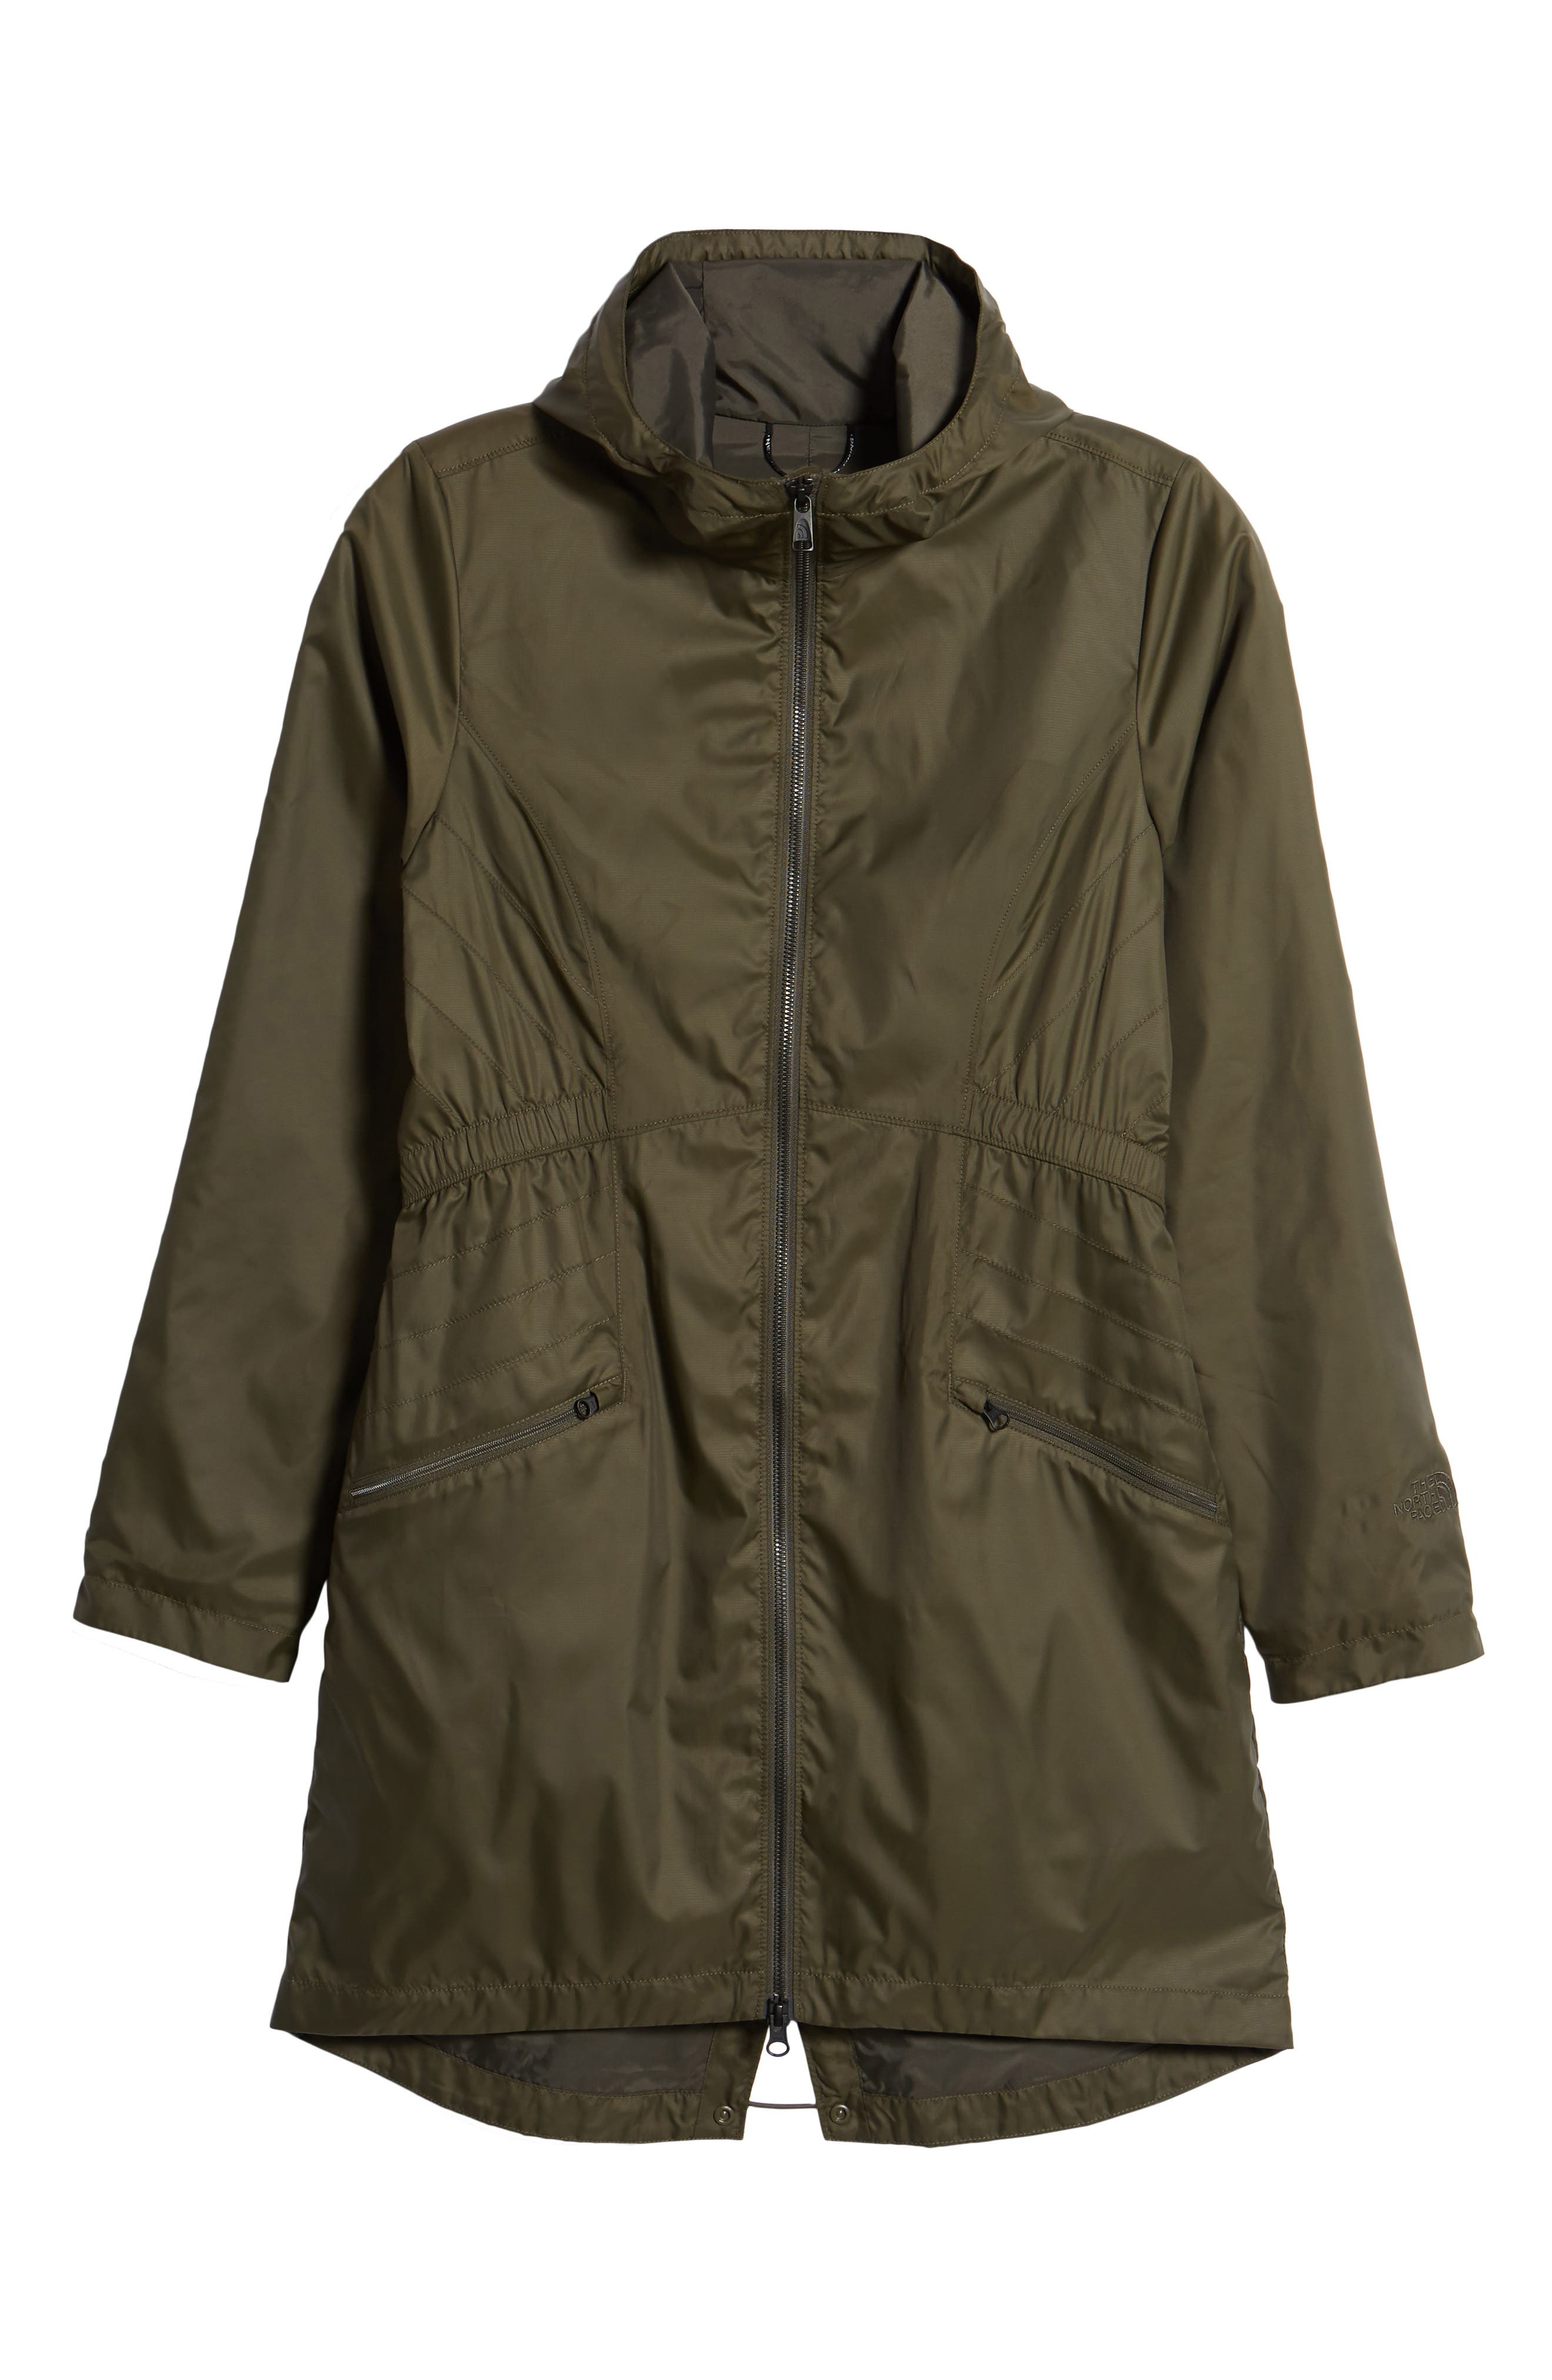 Rissy 2 Wind Resistant Jacket,                             Alternate thumbnail 6, color,                             NEW TAUPE GREEN